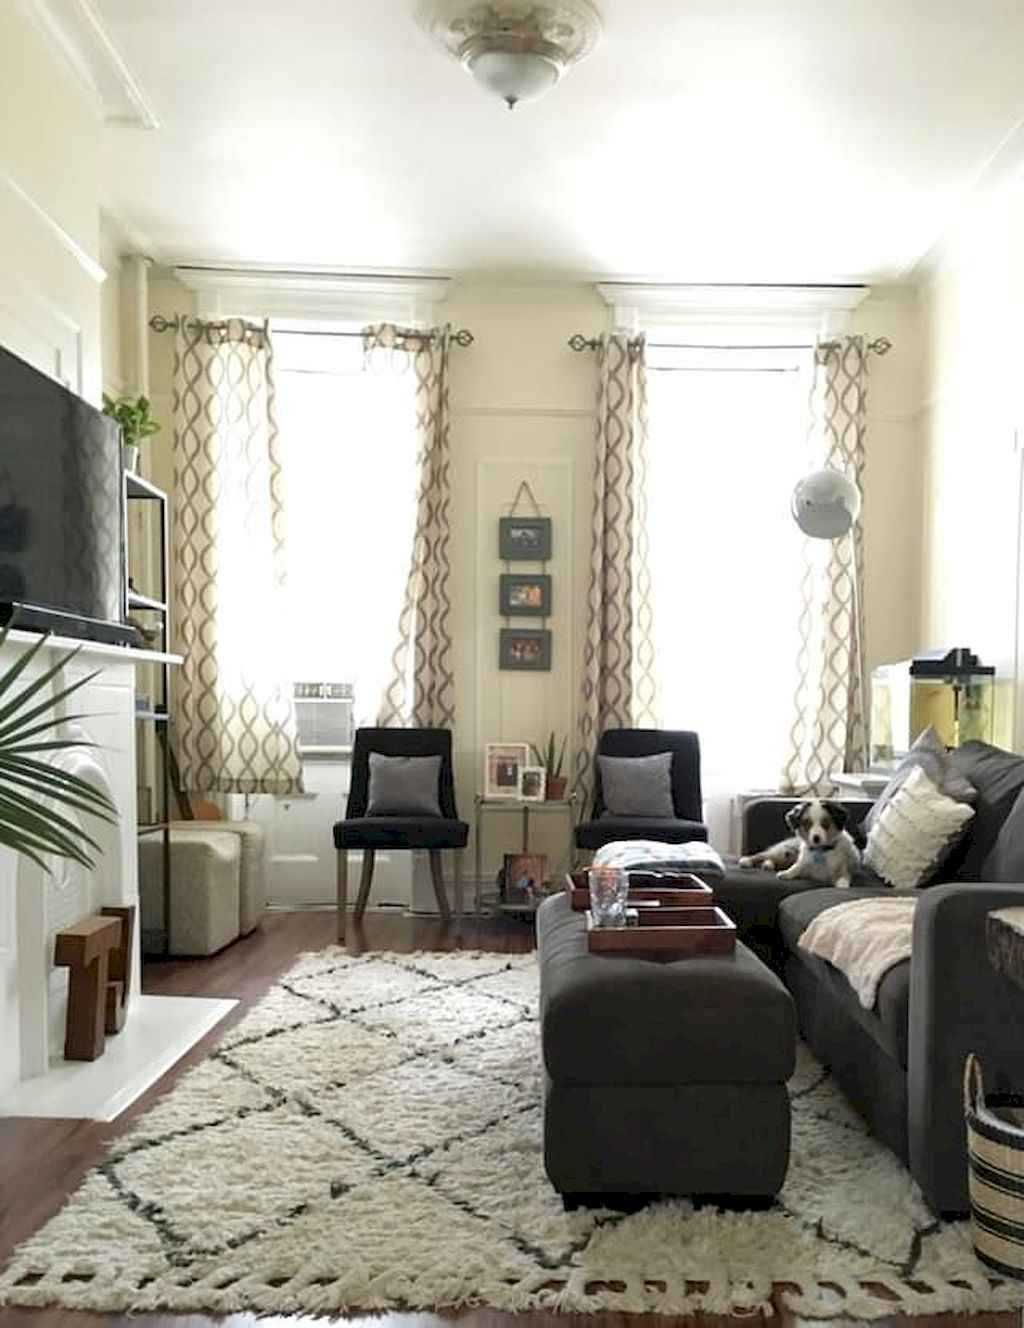 Awesome apartment living room decorating ideas (4)